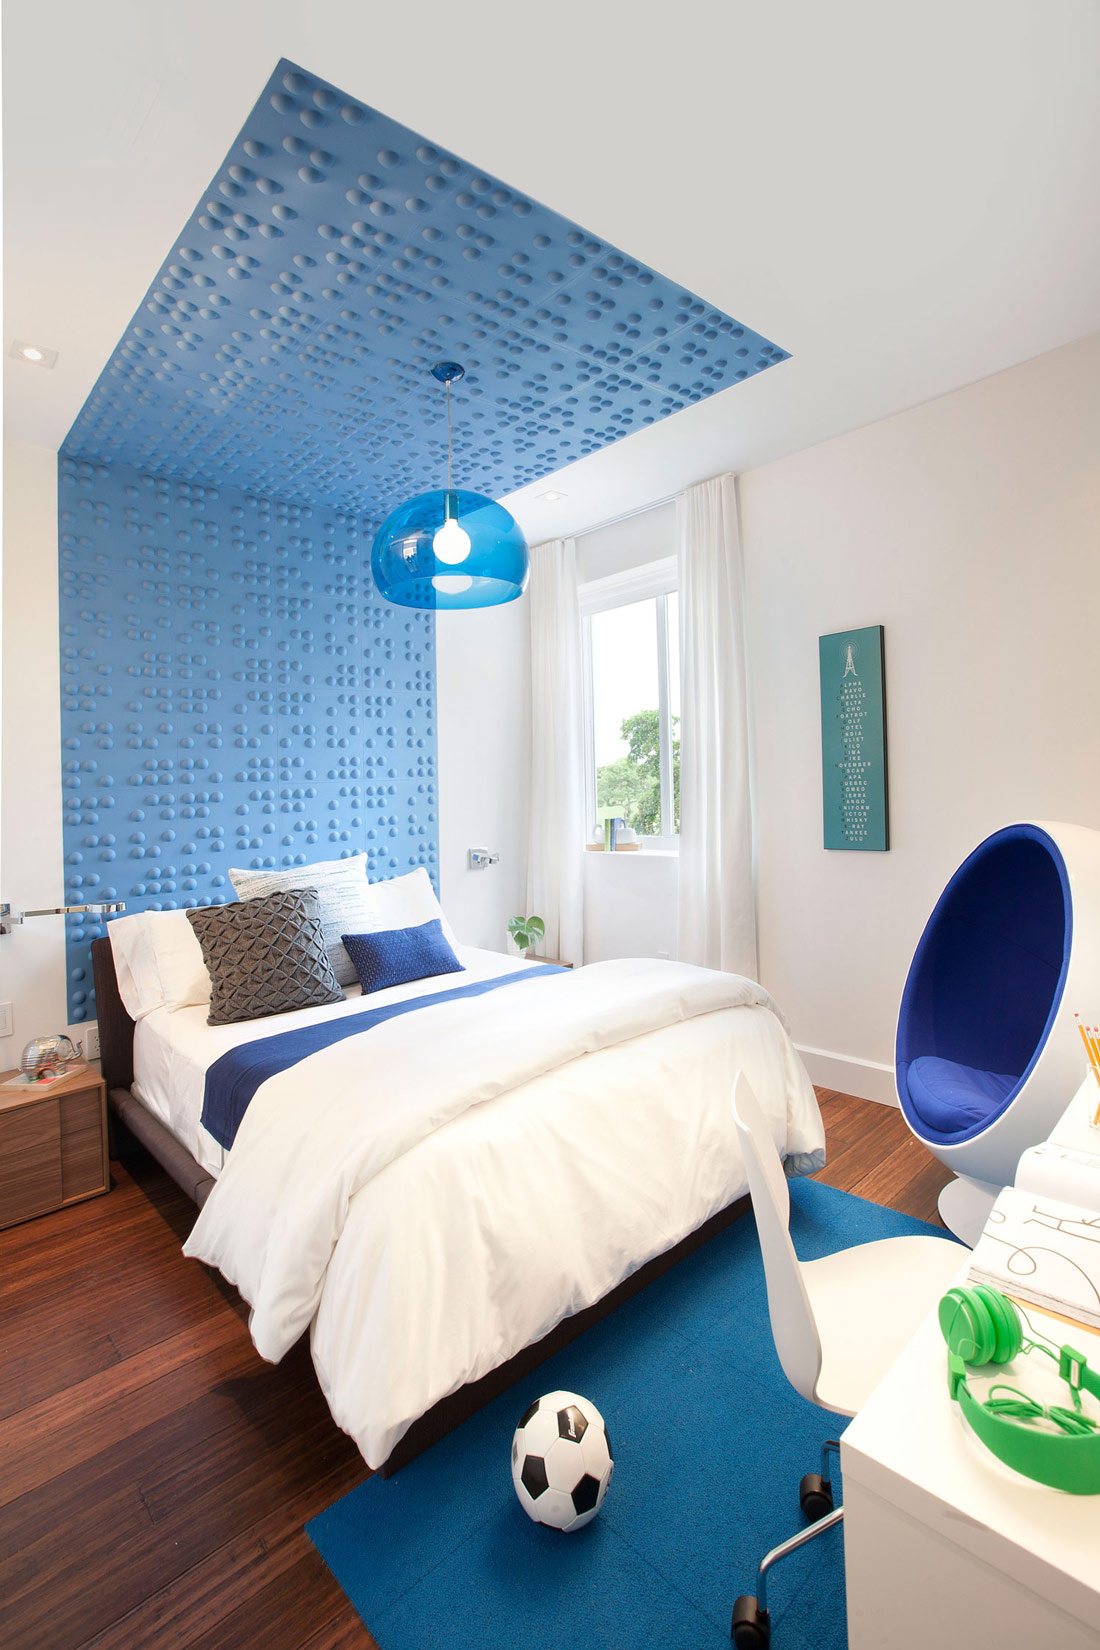 Blue & White Children's Bedroom, Stylish Interior Design in Miami, Florida